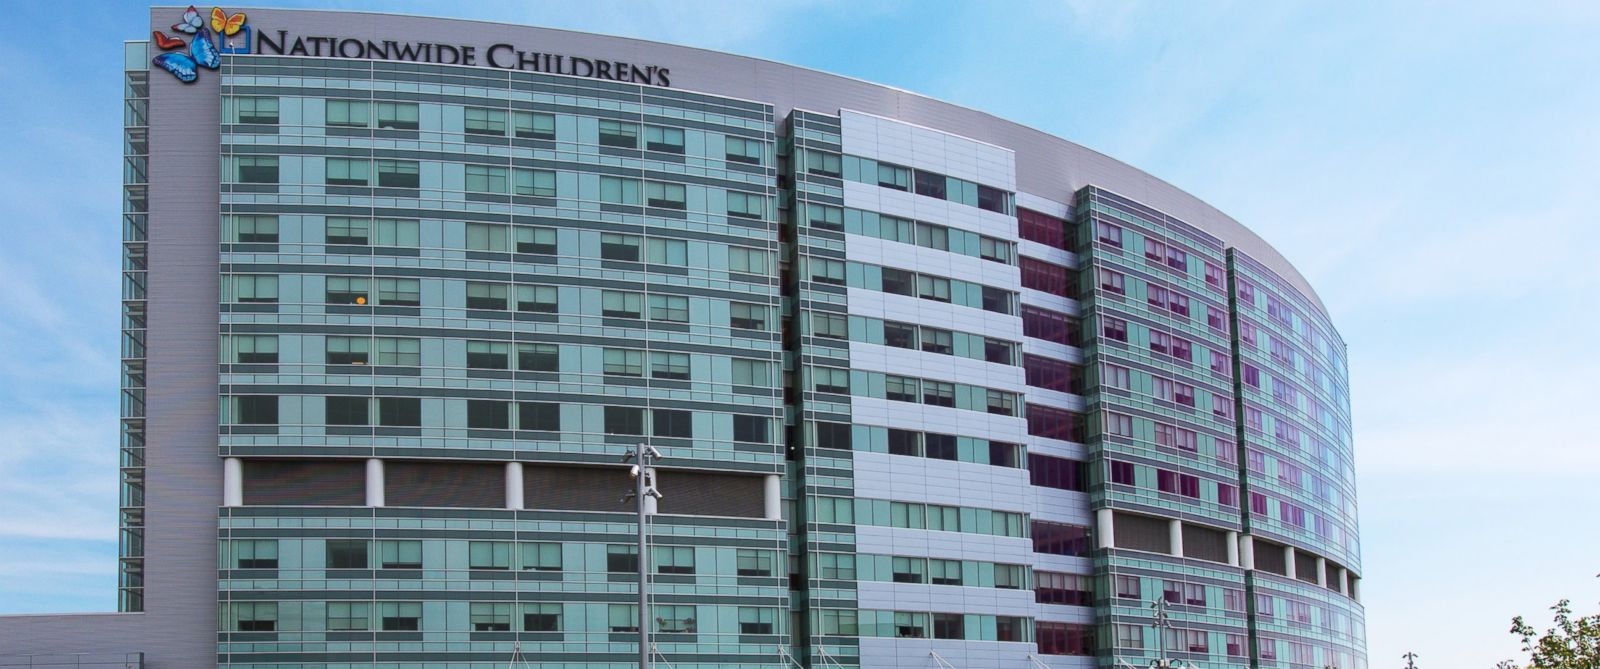 PHOTO: An exterior view of Nationwide Childrens Hospital in Columbus, Ohio.